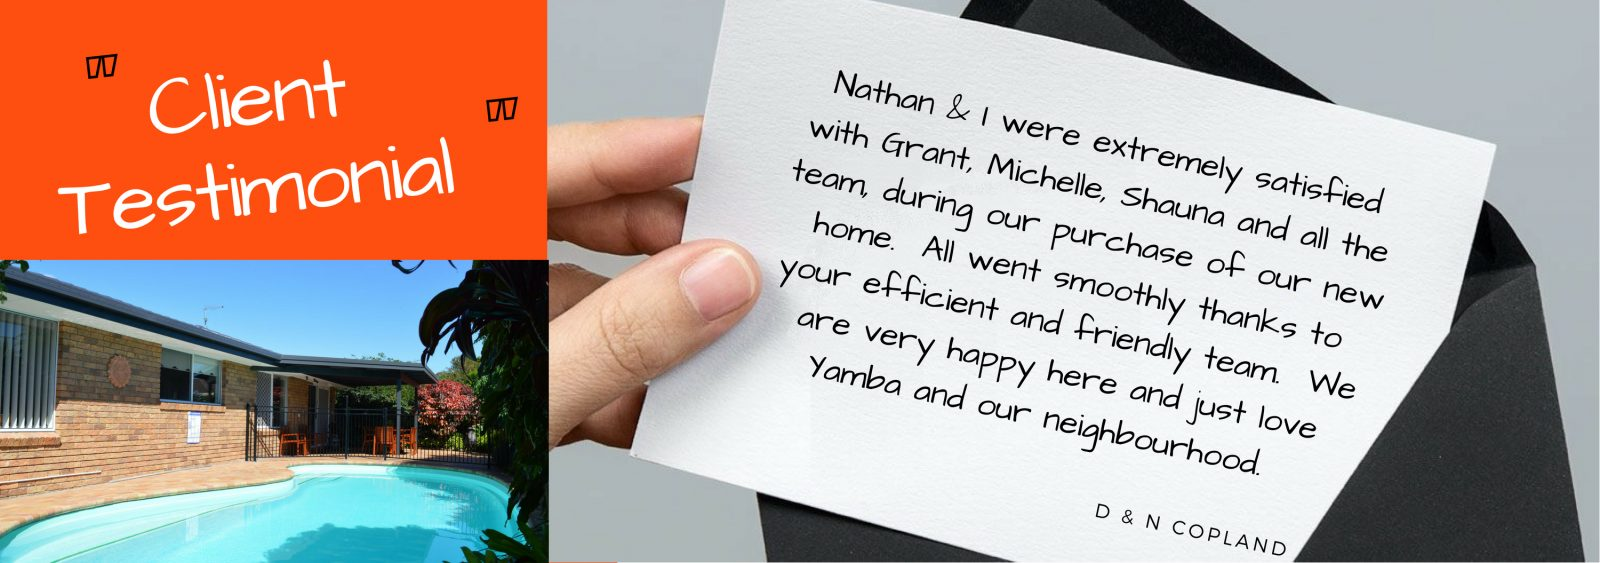 Testimonial - Nathan & I were extremely satisfied with Grant, Michelle, Shauna and all the team, during our purchase of our new home.  All went smoothly thanks to your efficient and friendly team.  We are very happy here and just love Yamba and our neighbourhood.